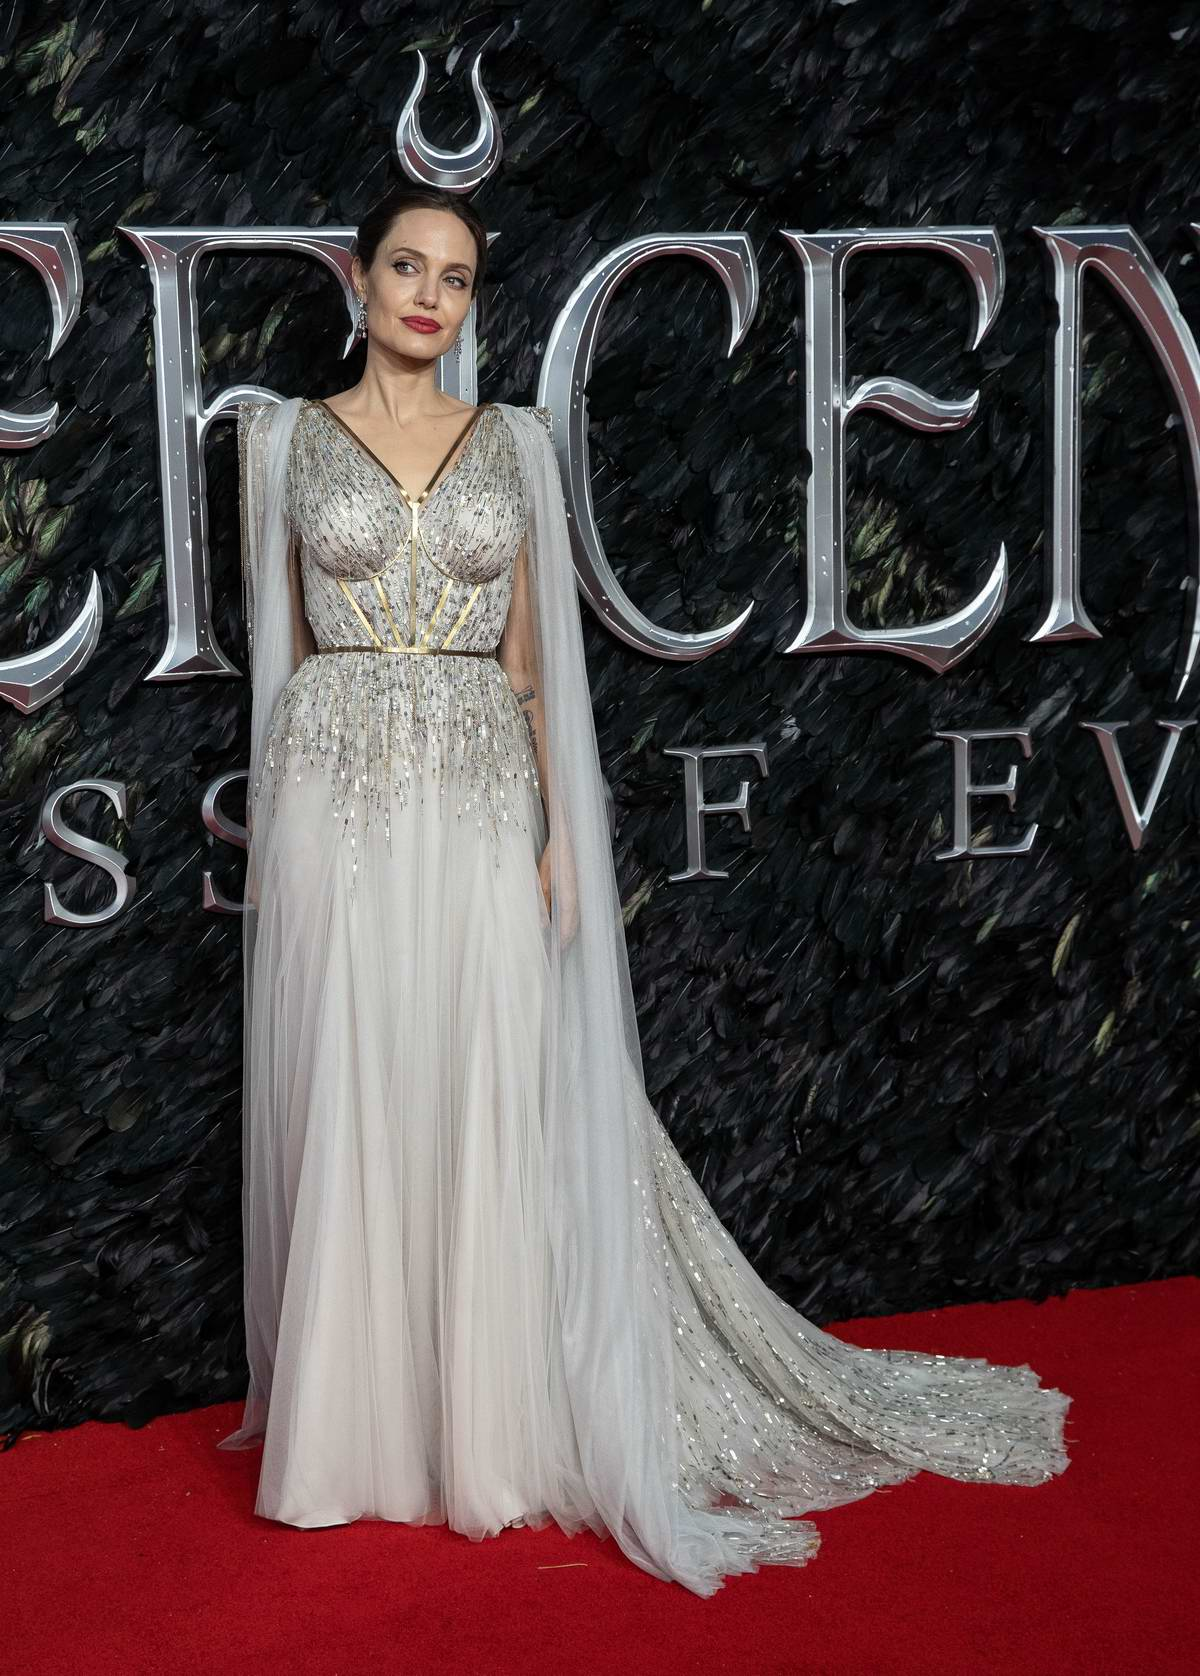 Angelina Jolie Attends The European Premiere Of Maleficent